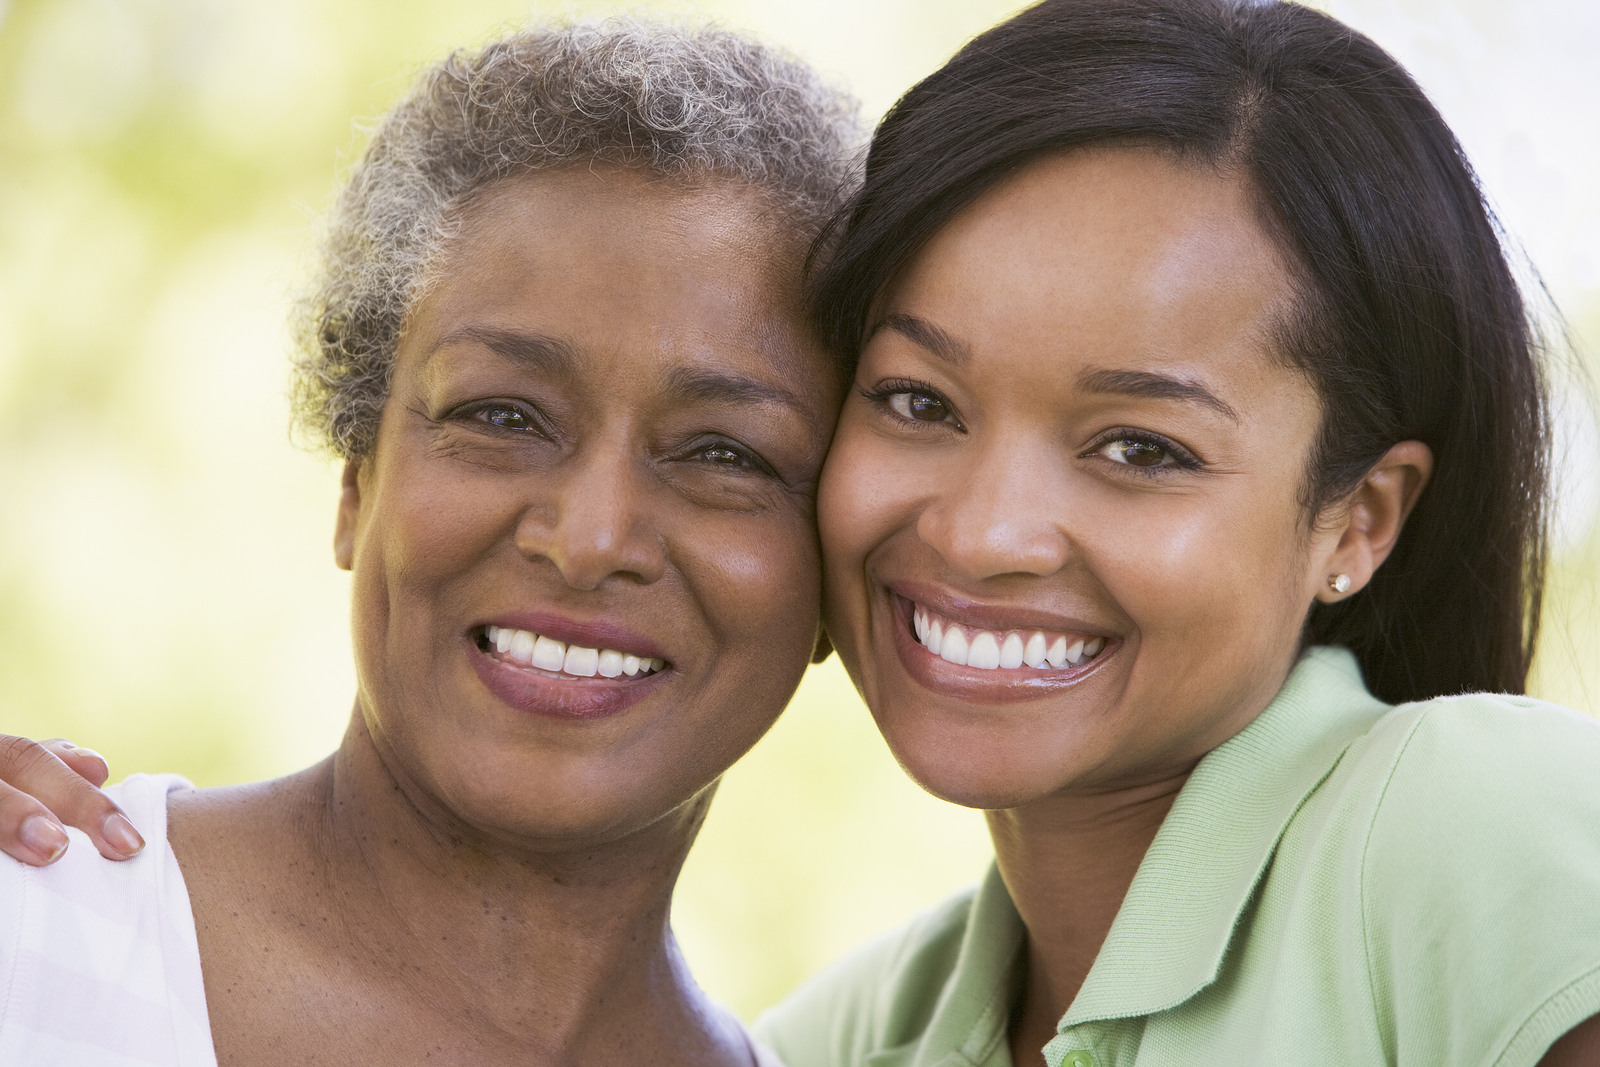 Image of mother, daughter smiling